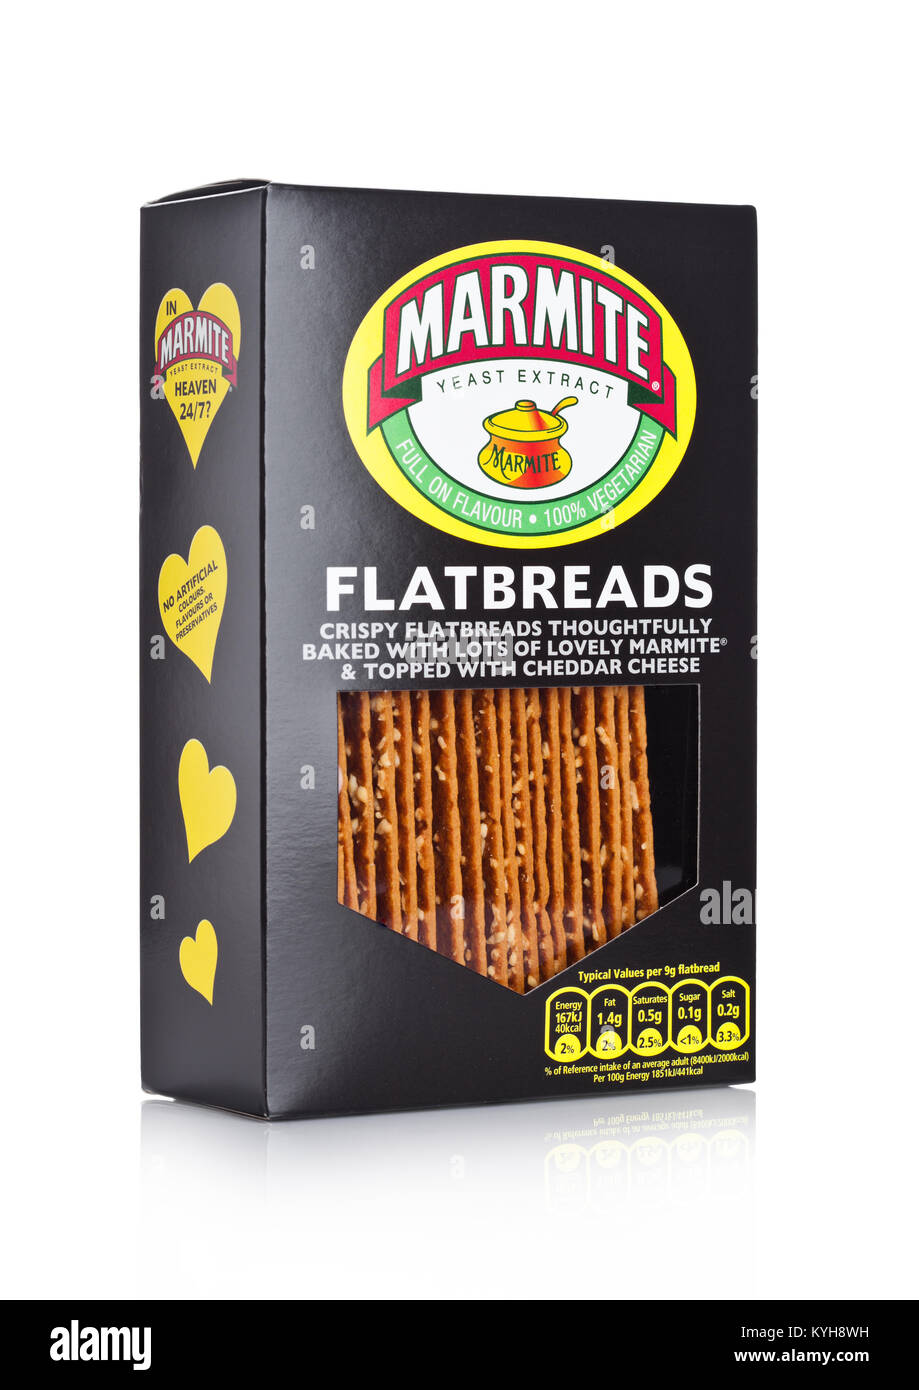 LONDON, UK - JANUARY 10, 2018: Box of flatbreads Marmite yeast extract on white background. The product is made - Stock Image